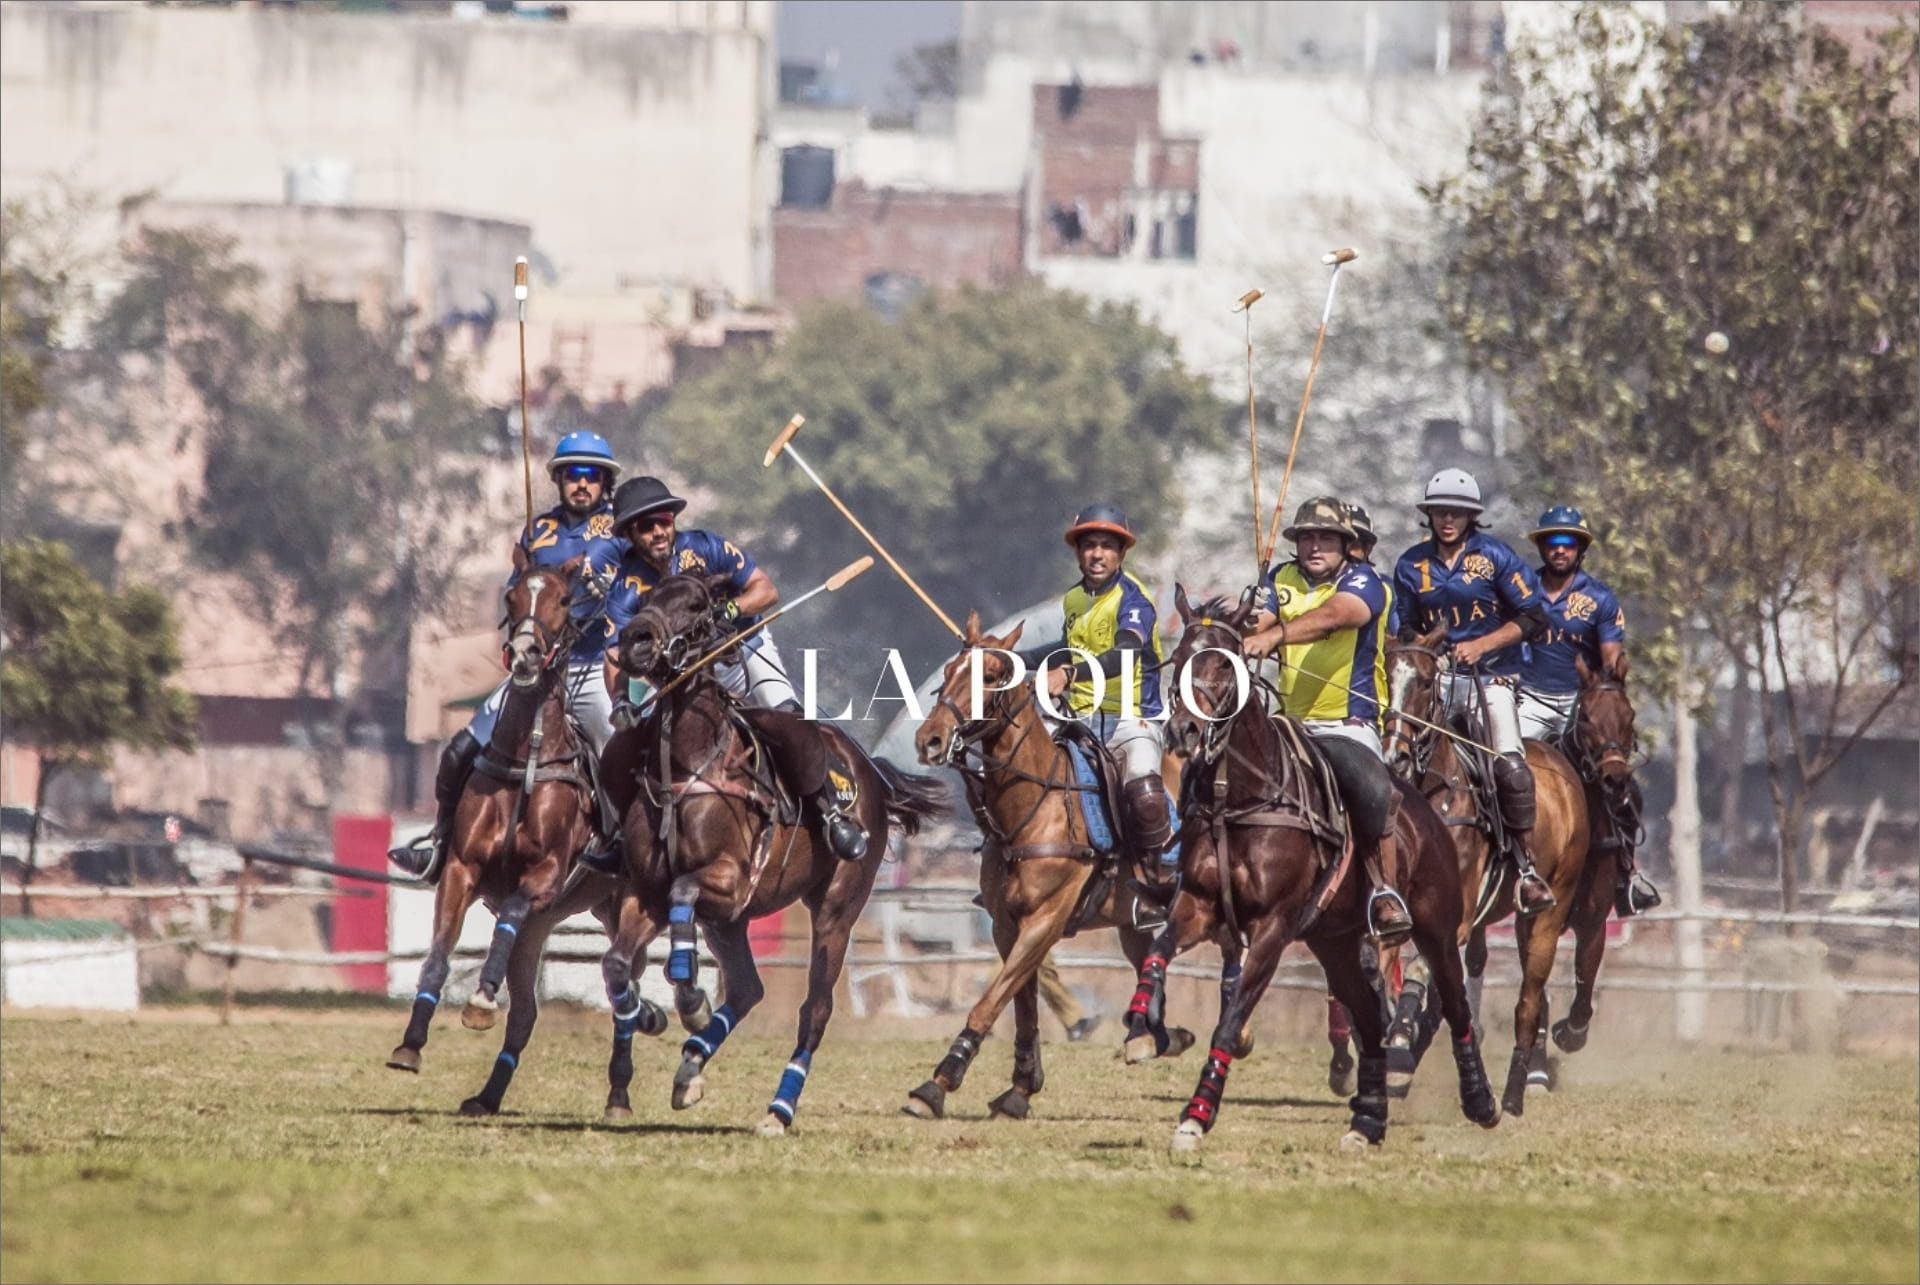 Polo players in action during Delhi Polo Season 2019